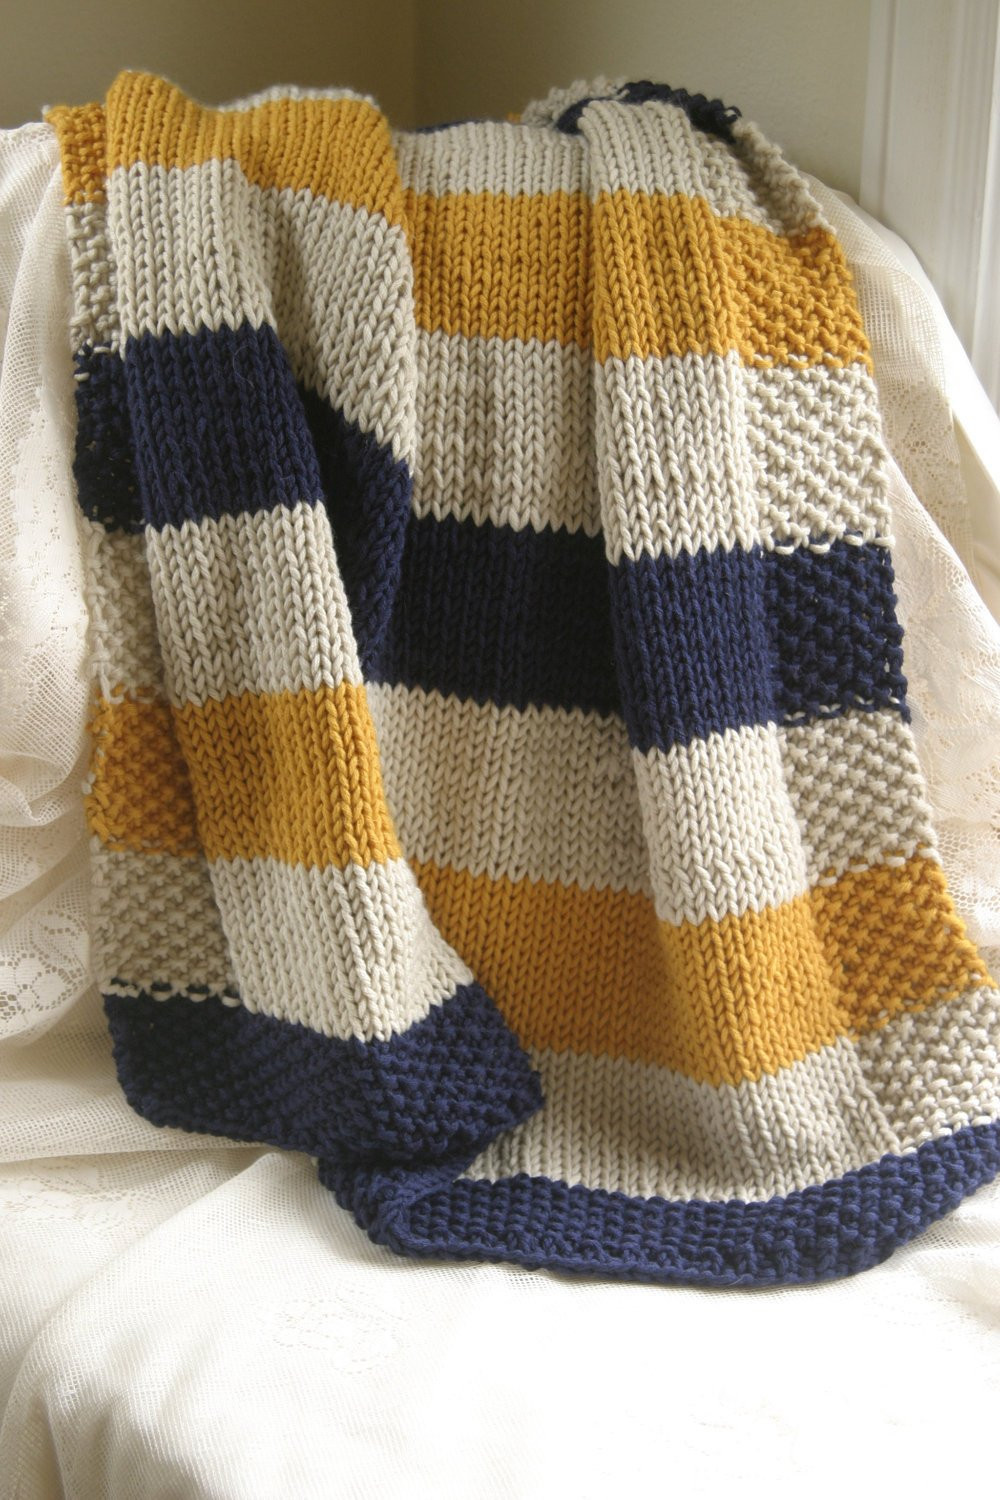 Striped Baby Blanket Inspirational Navy Mustard and Cream Hand Knit Baby Blanket Of Lovely 48 Pics Striped Baby Blanket